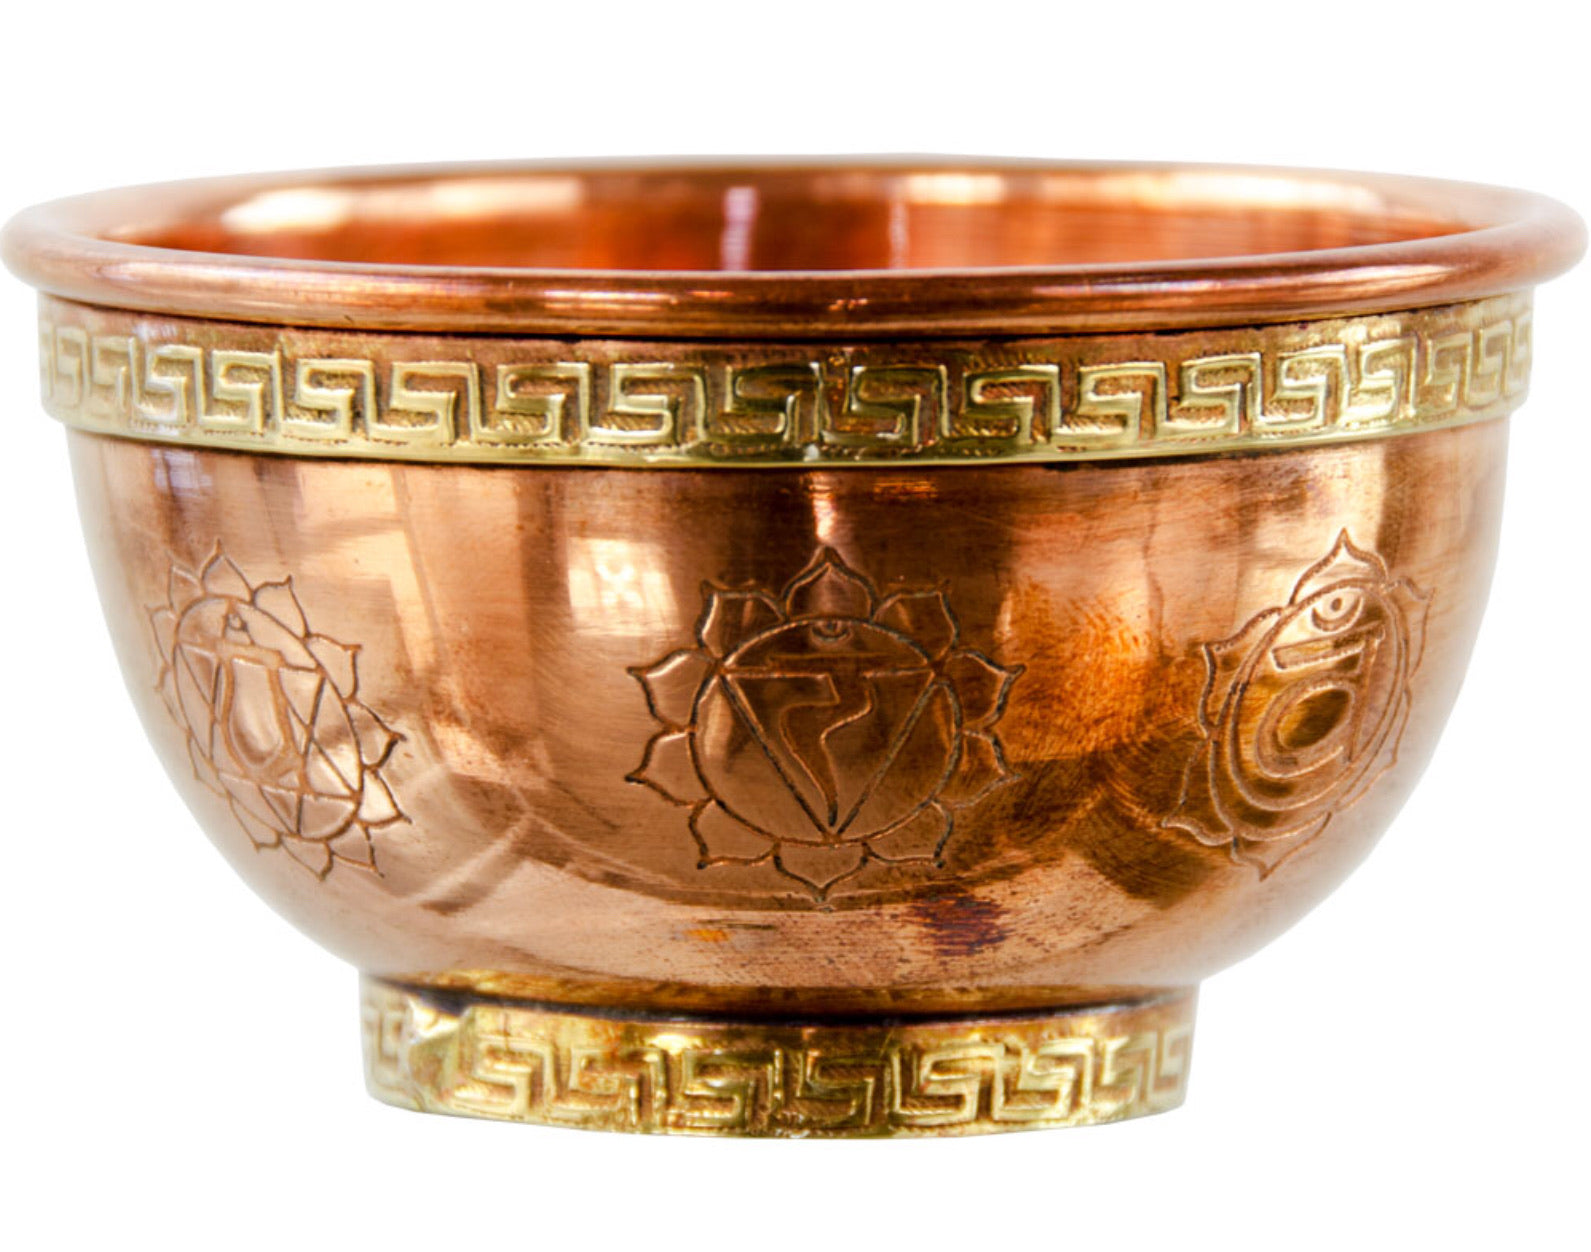 SEVEN CHAKRAS COPPER BOWL INCENSE AND CHARCOAL BURNER